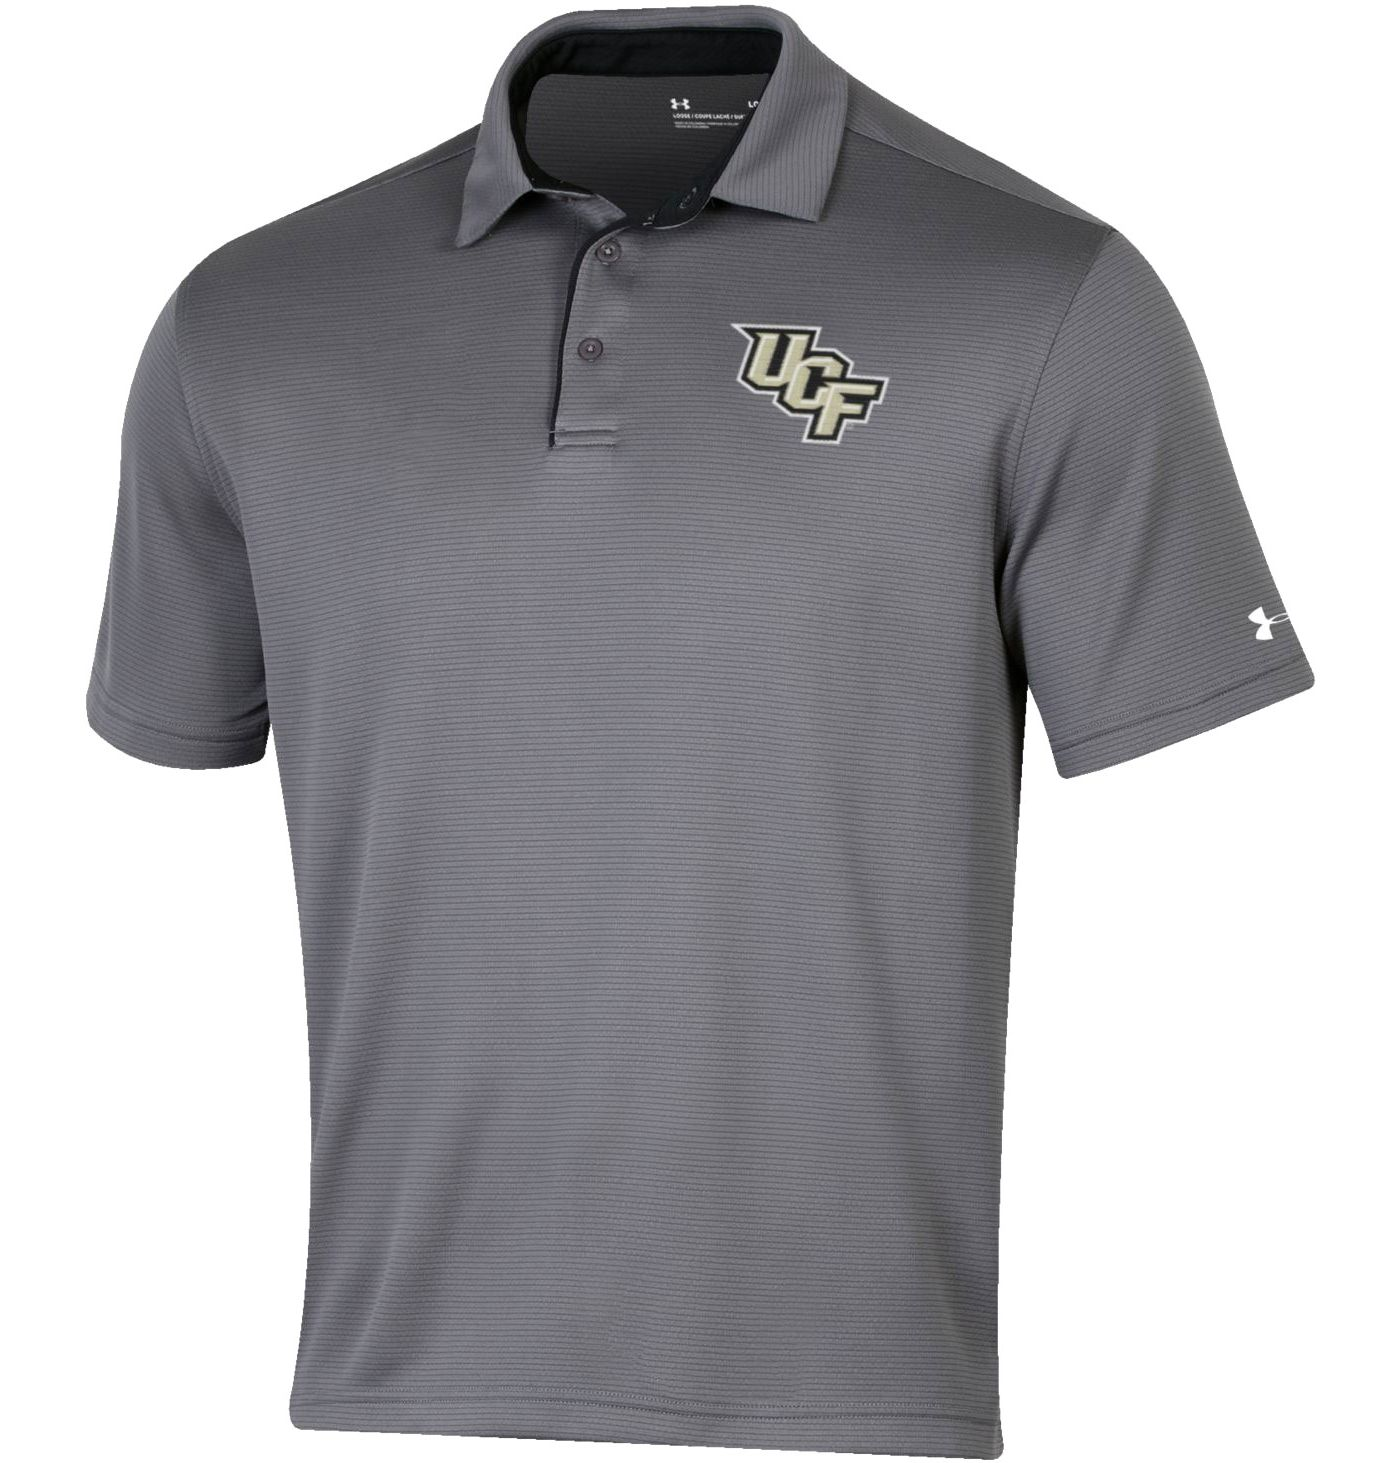 Under Armour Men's UCF Knights Grey Tech Polo